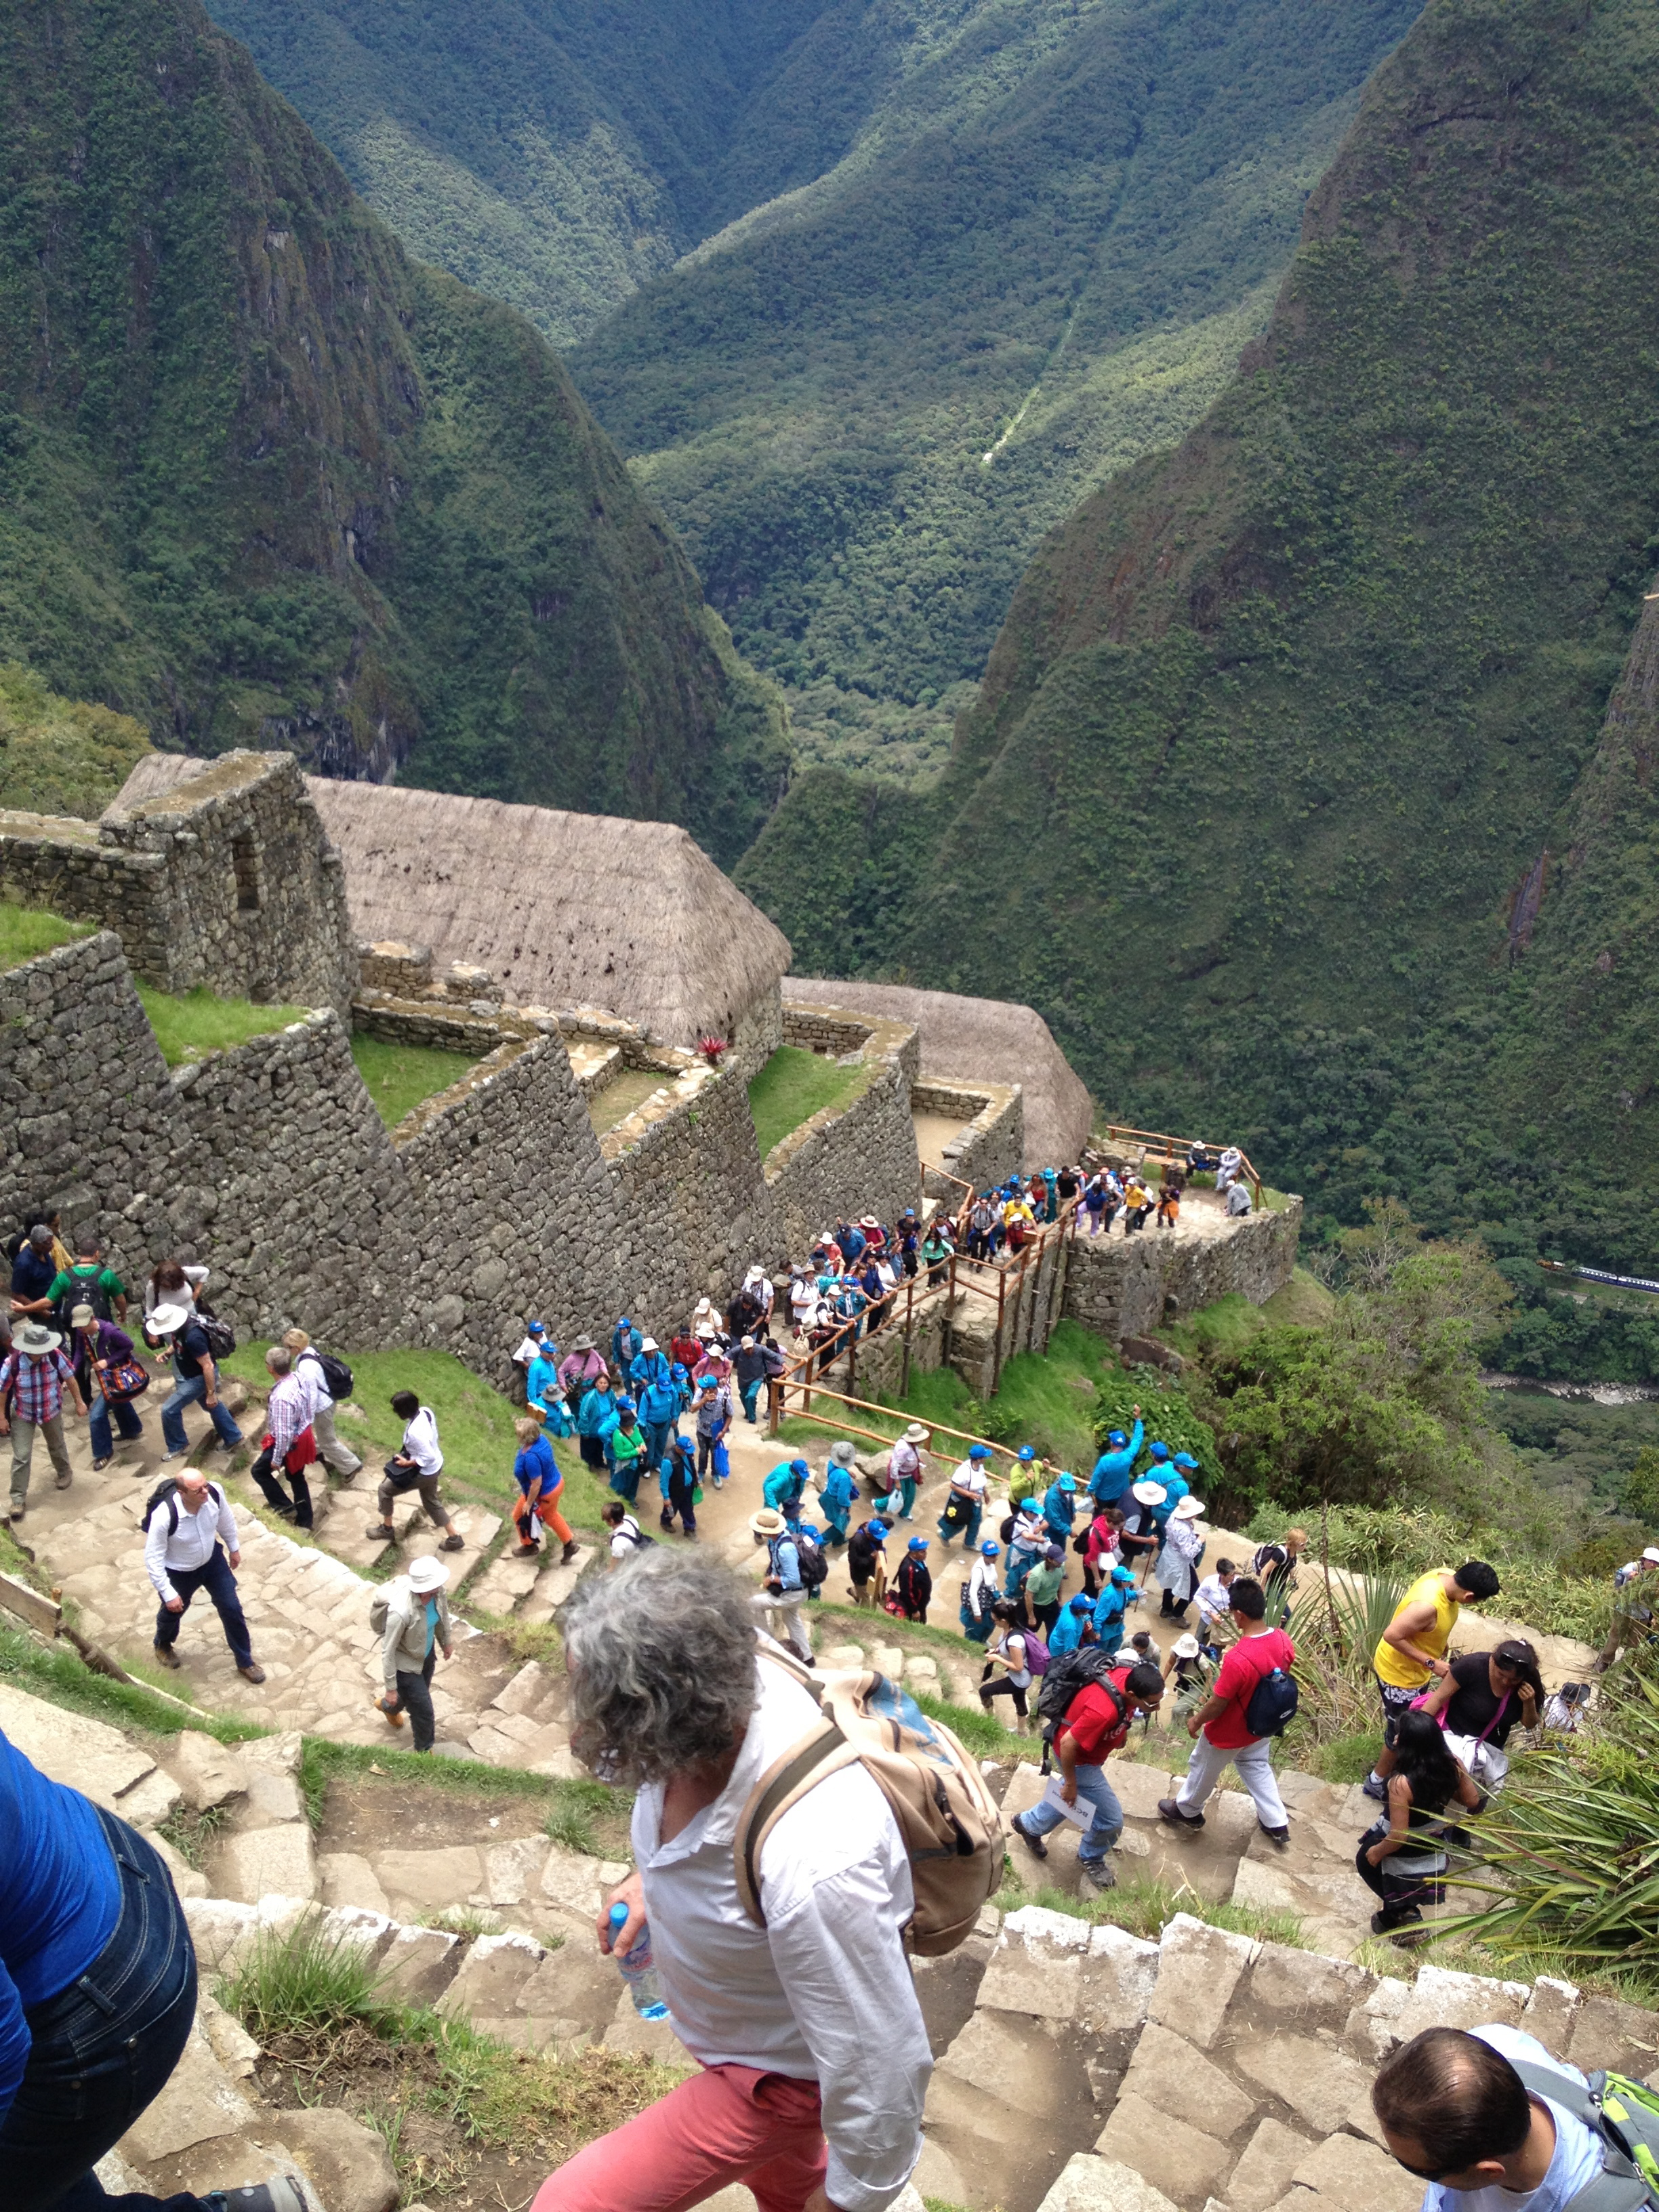 This gives you a feel for how busy Machu Picchu can get. We called the people in blue, smurfs, because they were EVERYWHERE!